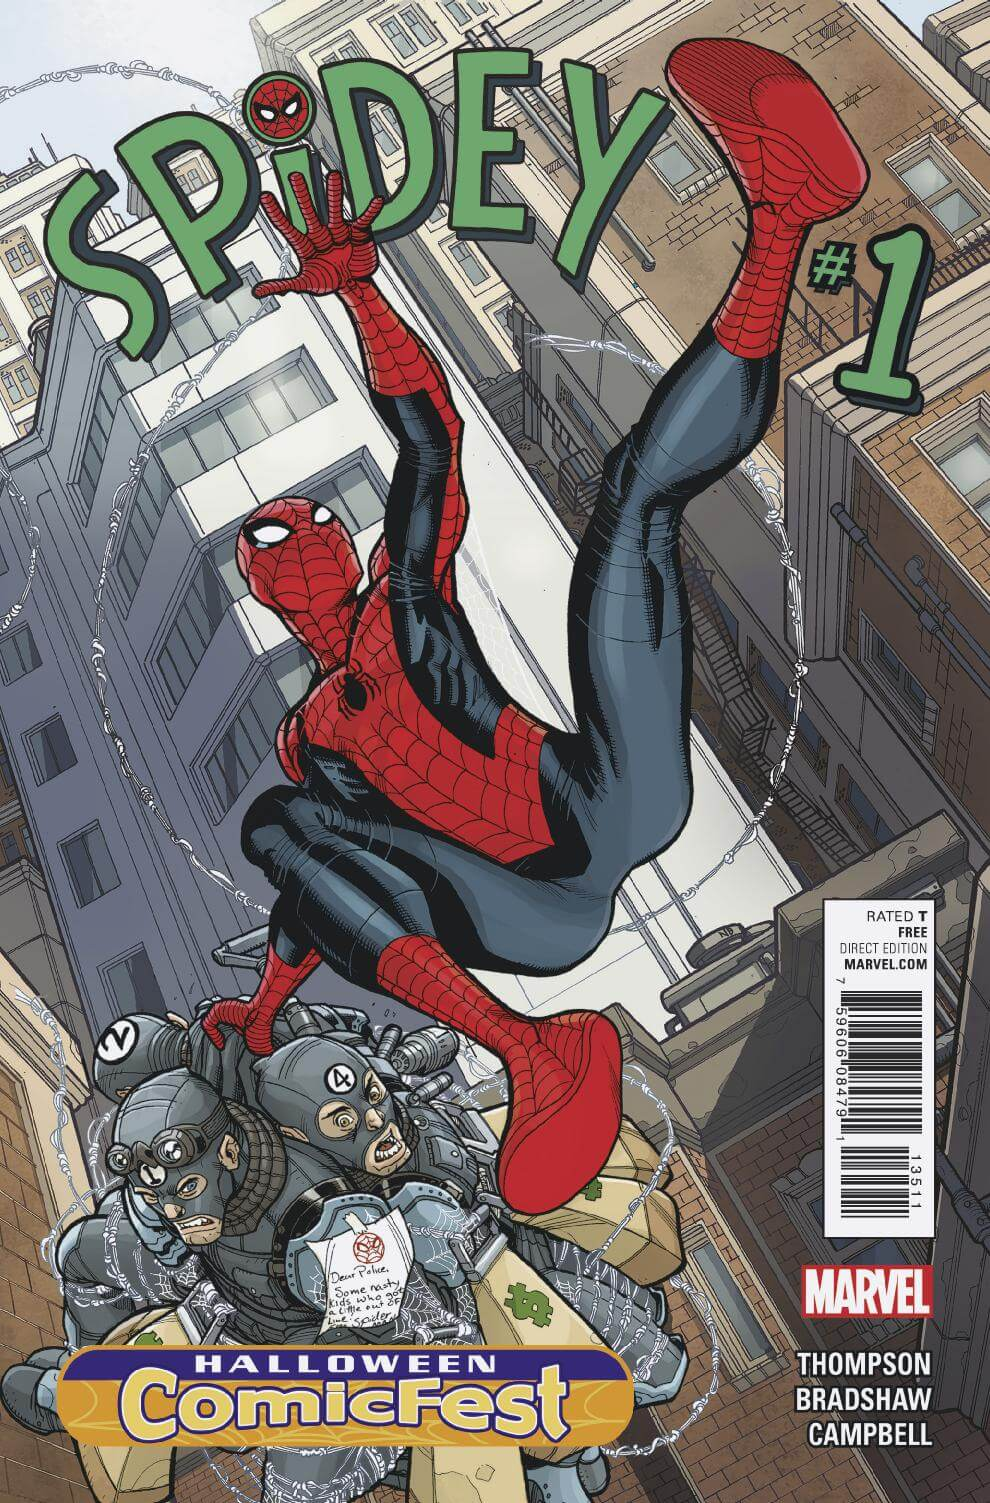 spidey_1_hcf_edition